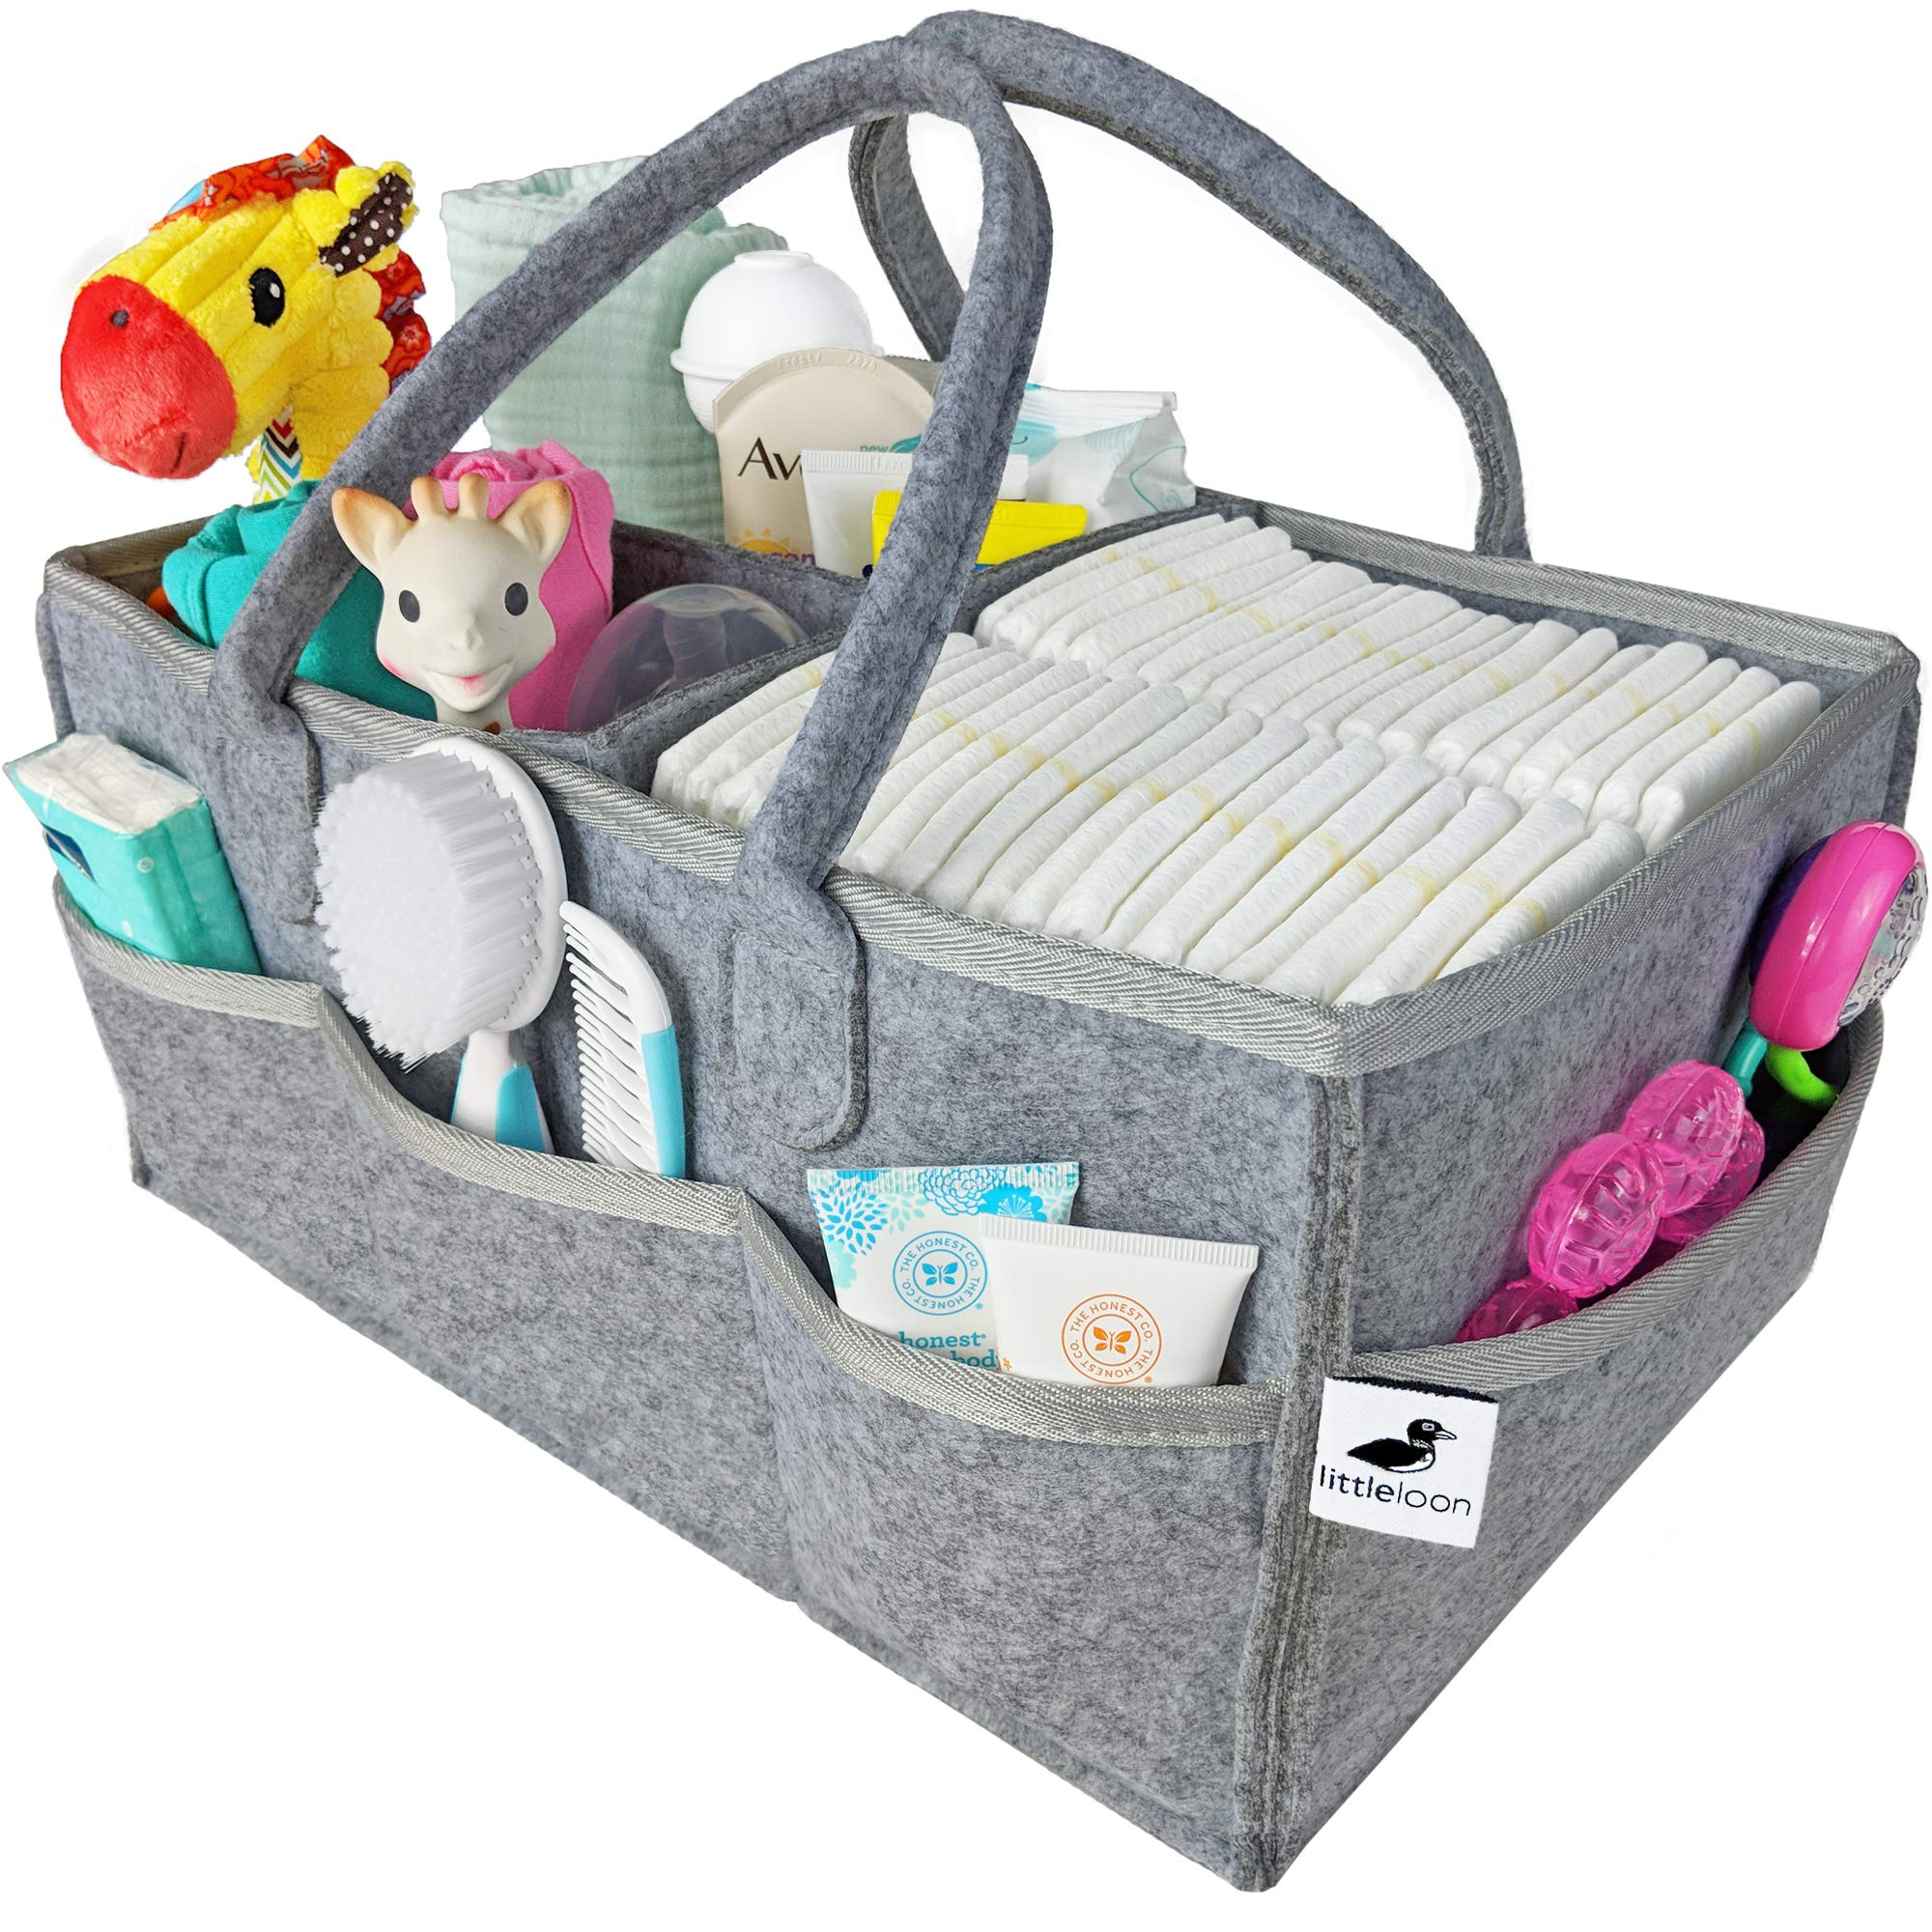 Baby Diaper Caddy Organizer - Nursery Changing Table Storage Basket | Newborn Gift Registry for Baby Shower | Large Portable Gray Felt Bin Holder for Diapers, Wipes, Toys, Car Travel Tote, Registries